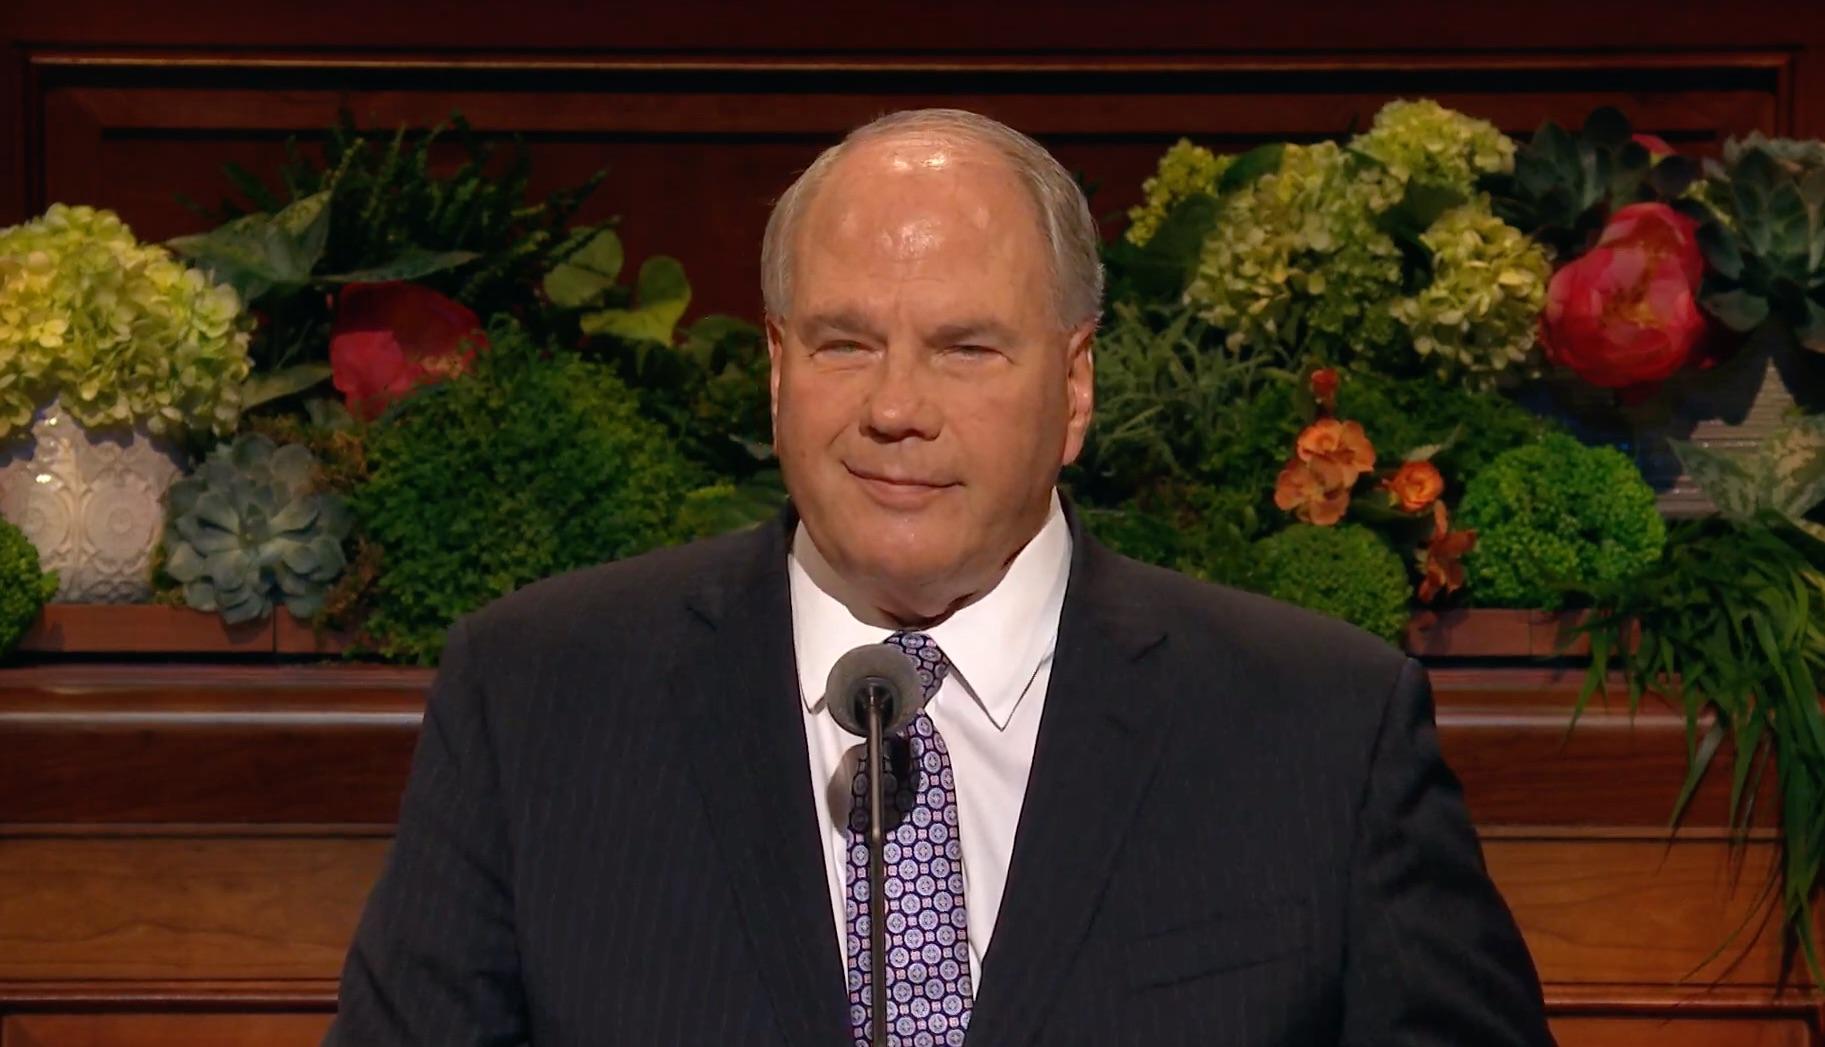 Elder Ronald A. Rasband of the Quorum of the Twelve Apostles gives his address during the Sunday afternoon session of the 189th Annual General Conference on April 7, 2019.